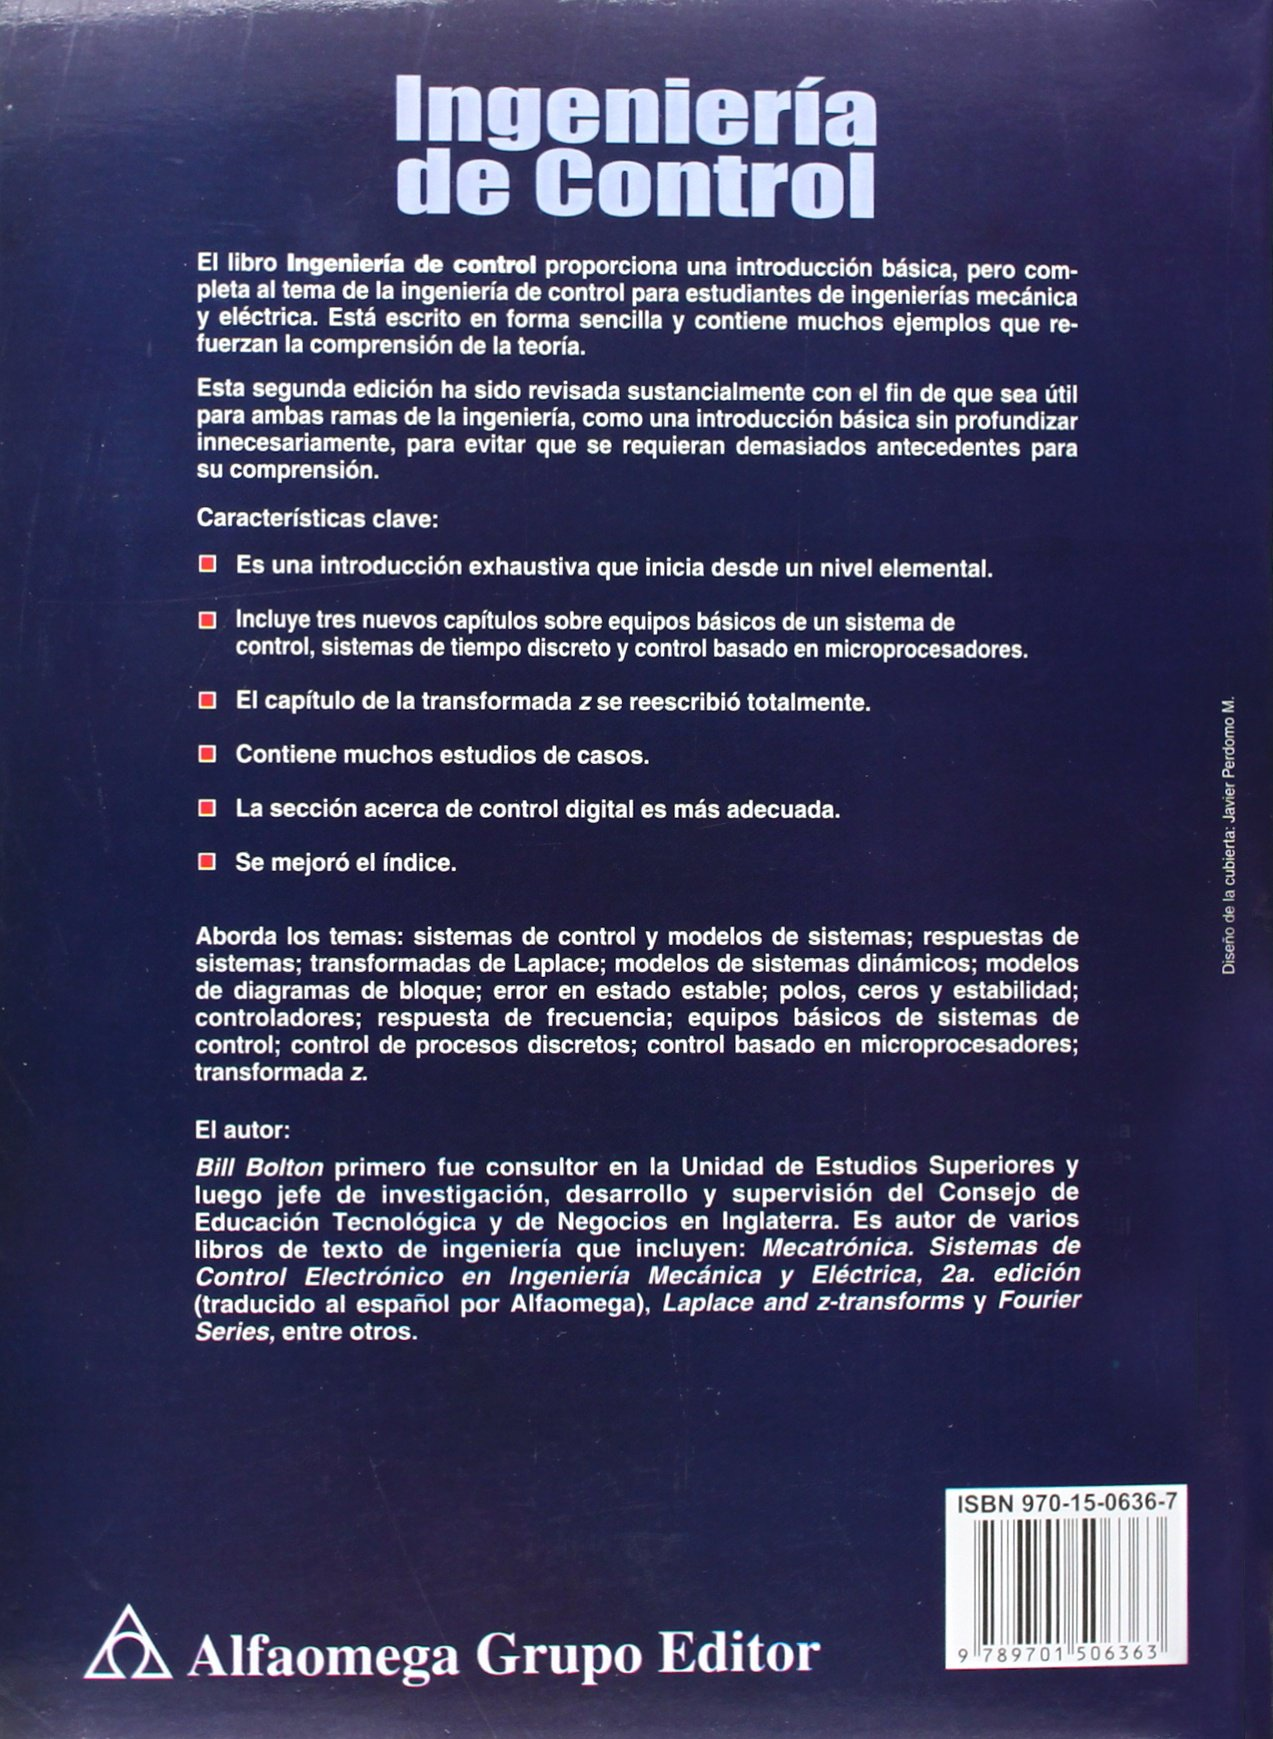 Ingenieria de Control - 2b: Edicion (Spanish Edition): W. Bolton: 9789701506363: Amazon.com: Books